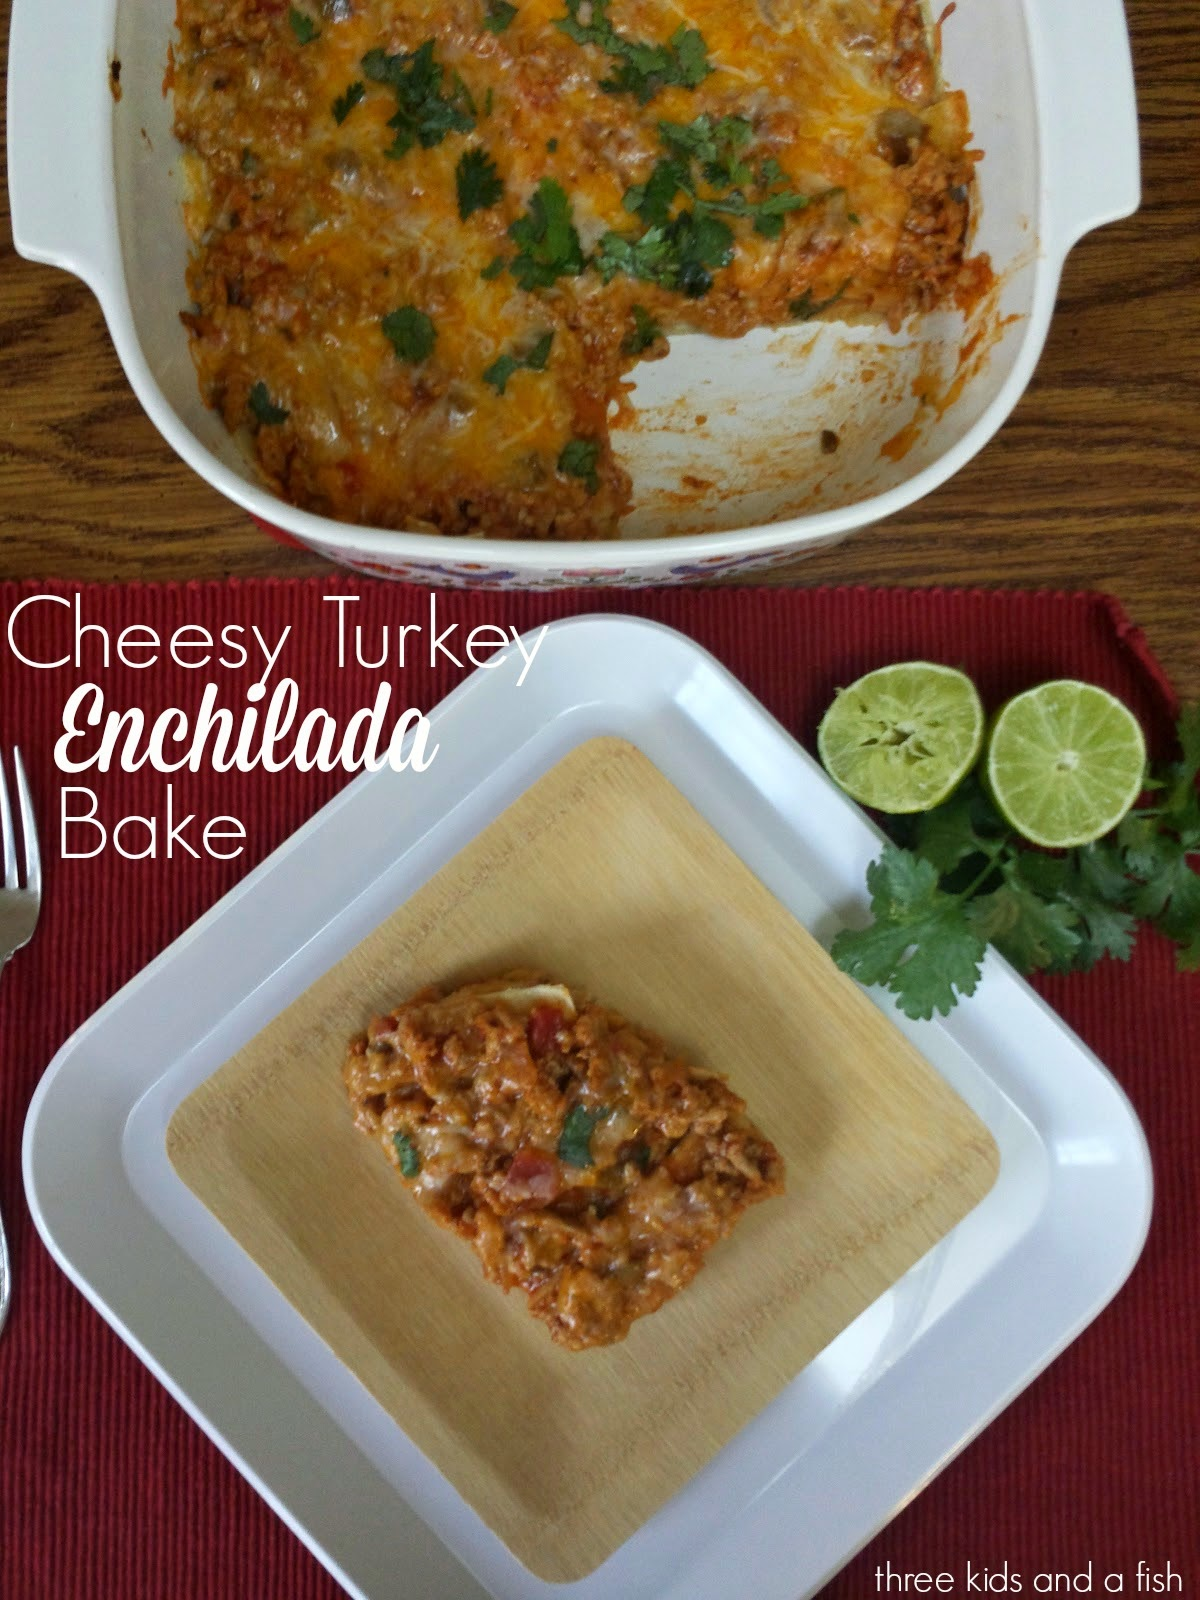 a slice of cheesy turkey enchilada bake